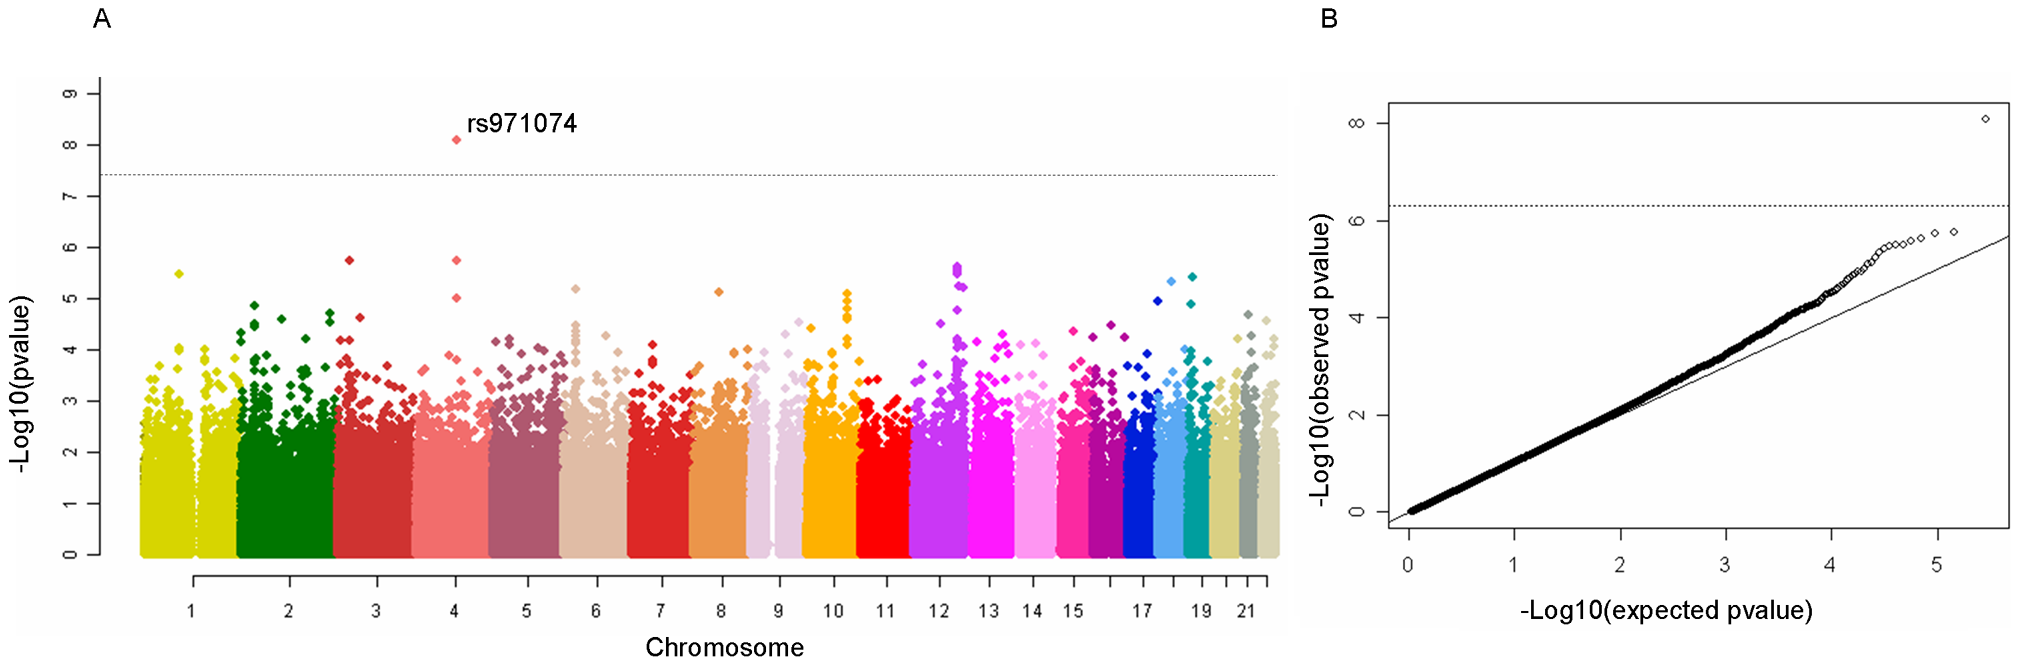 Manhattan plot of the ARCAGE and CE UADT cancer GWAS discovery phase.